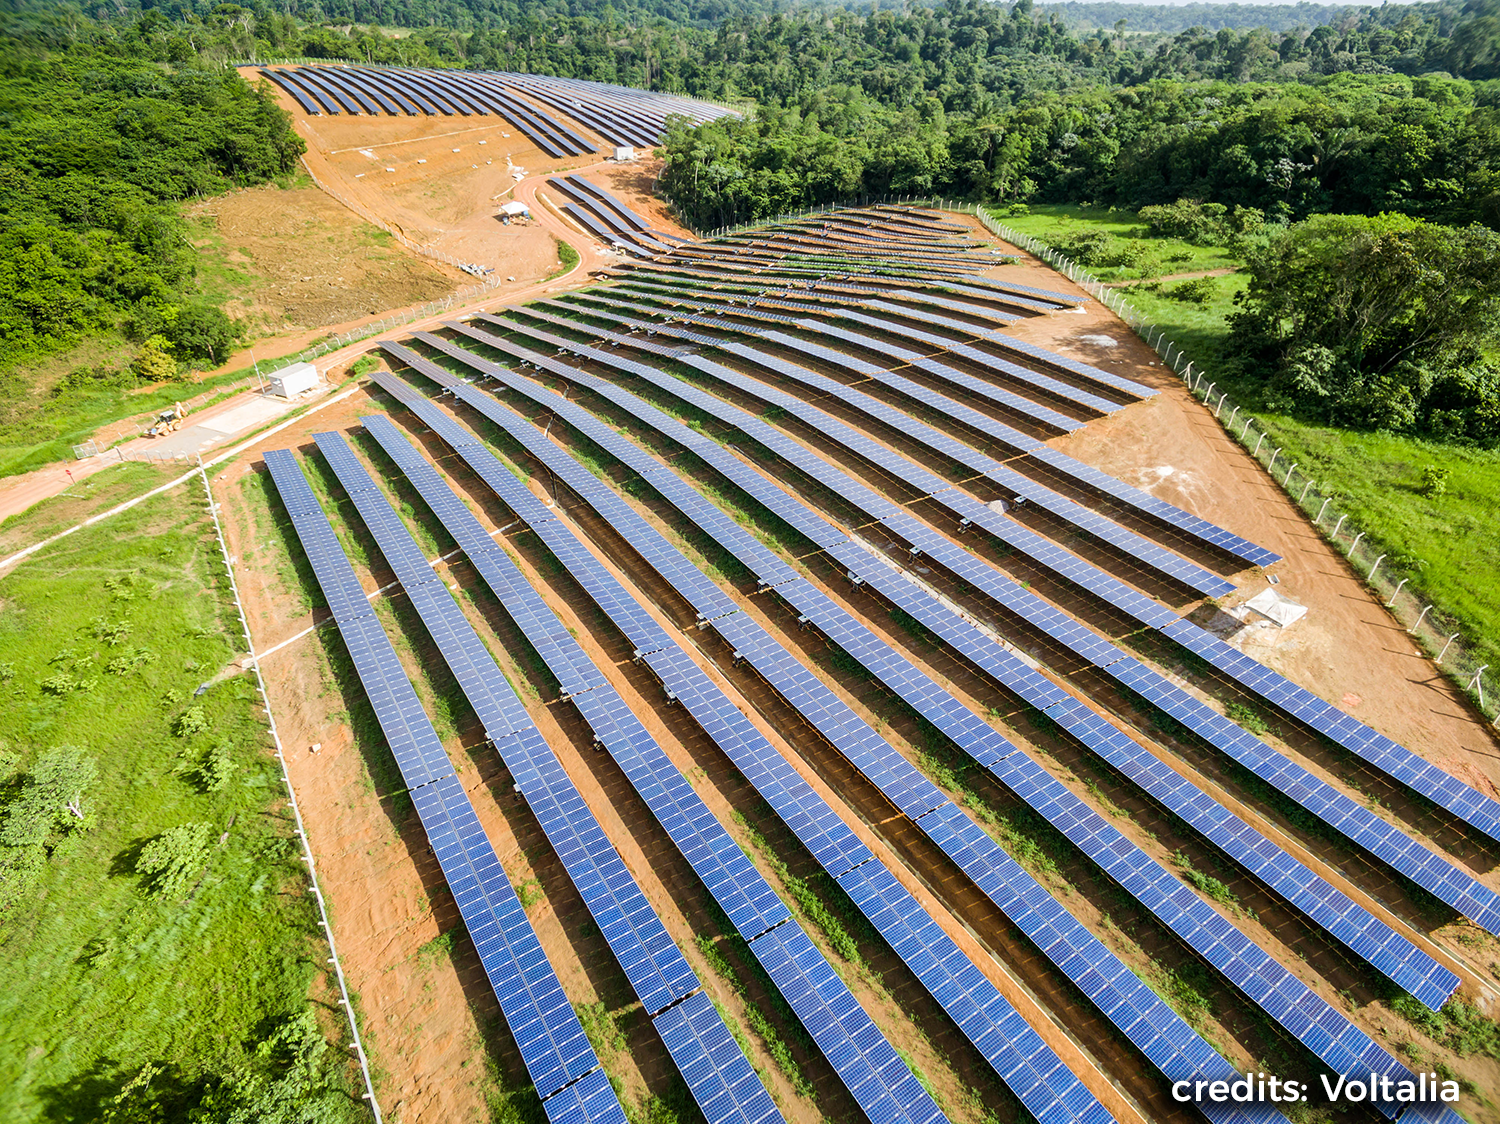 Voltalia partners with Reuniwatt in its first solar plant in Brazil